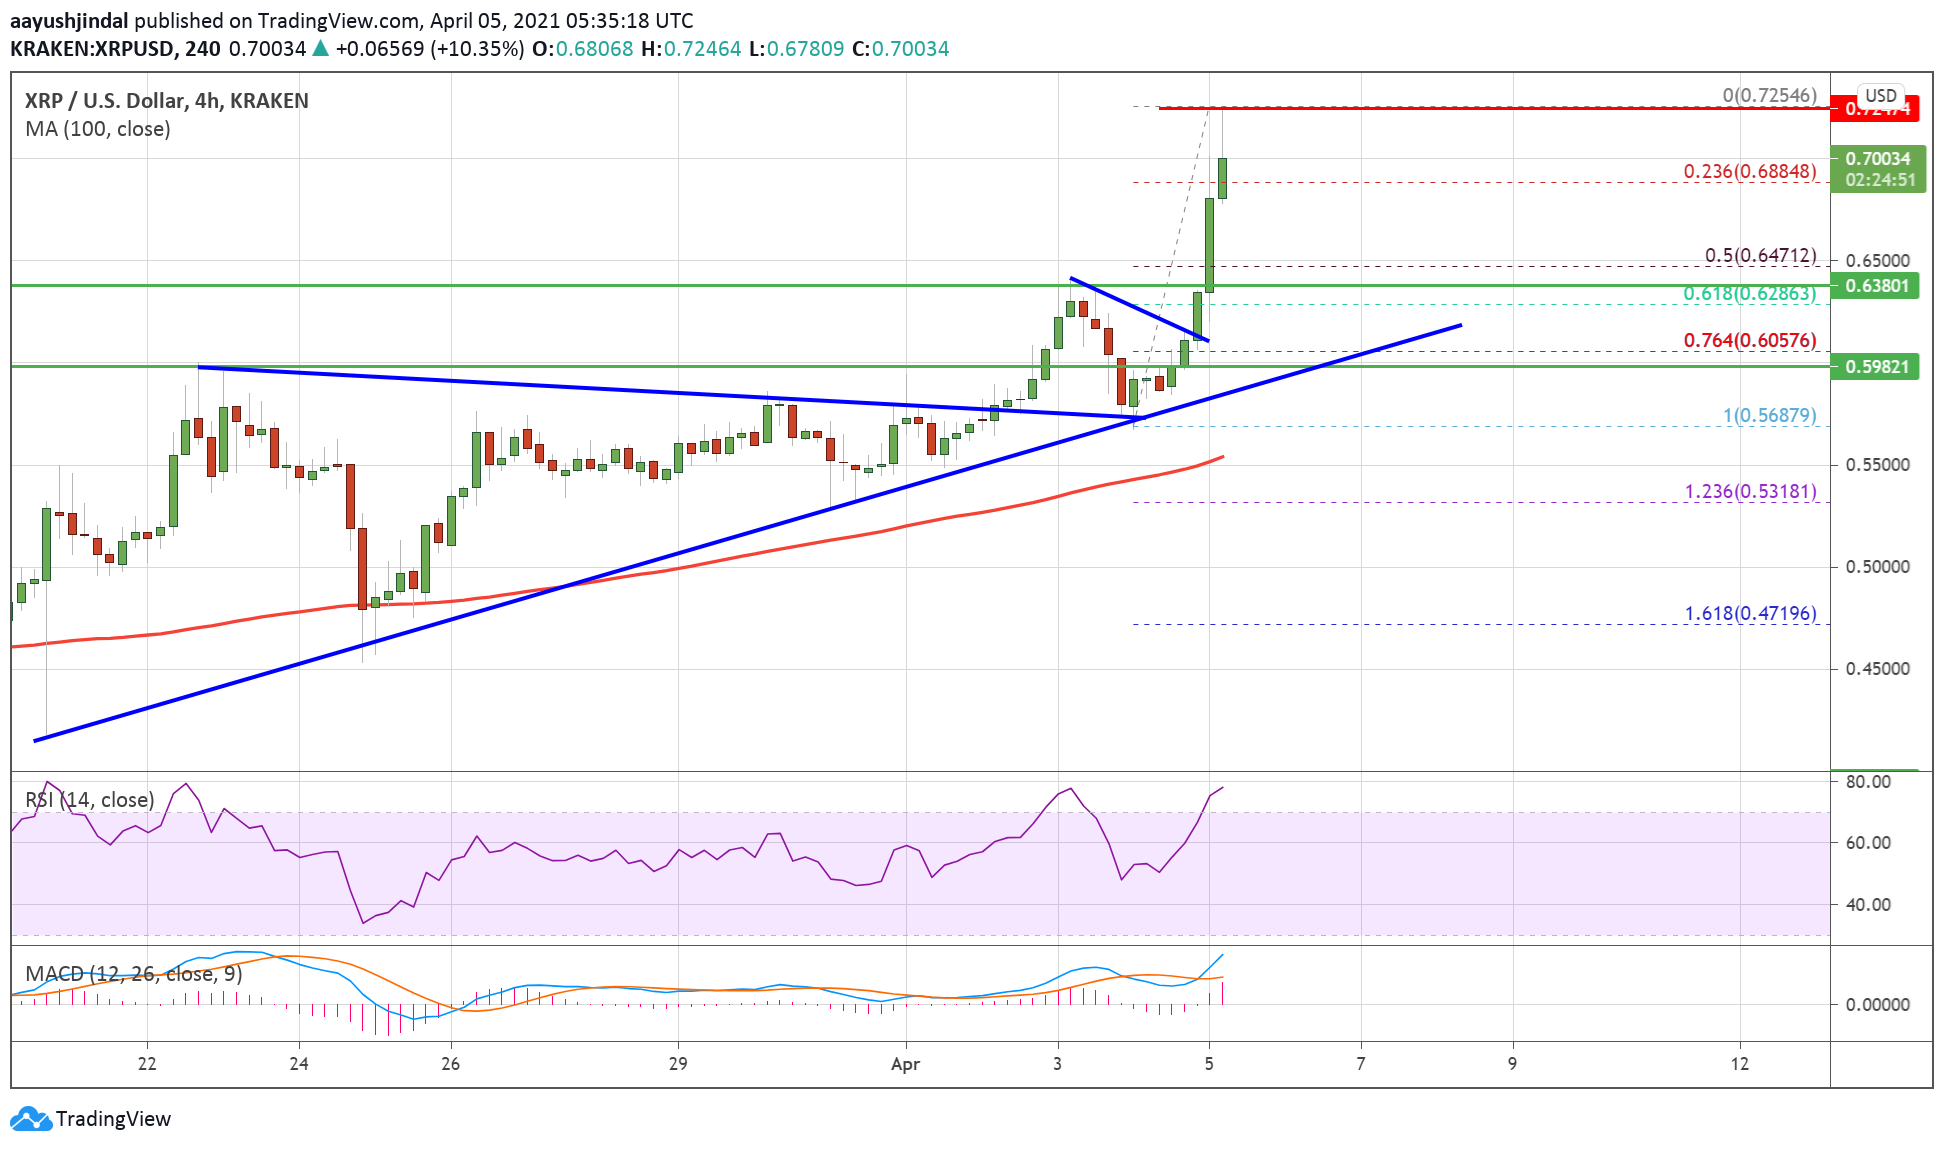 Charted: Ripple (XRP) Surges Above $0.70, Bulls Aim $0.80 or Higher